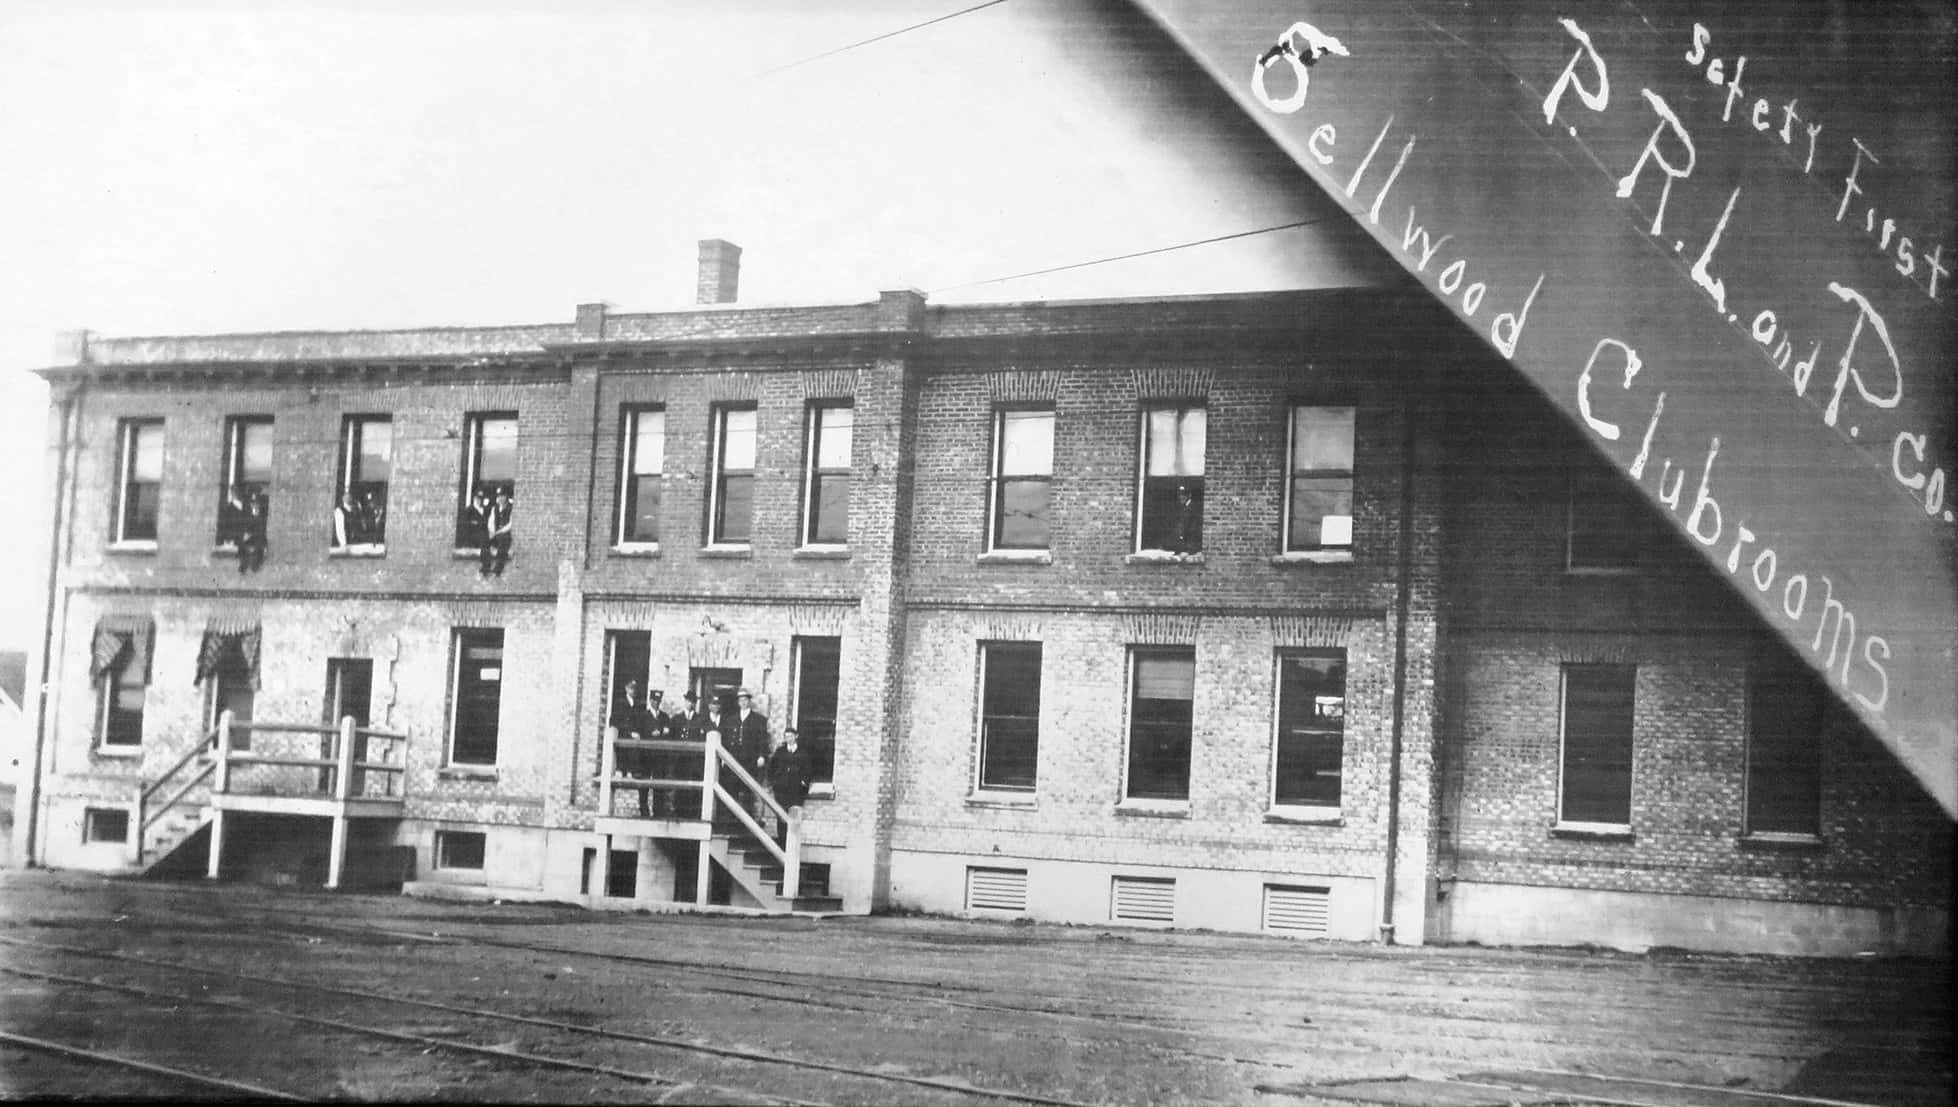 Historical building photo